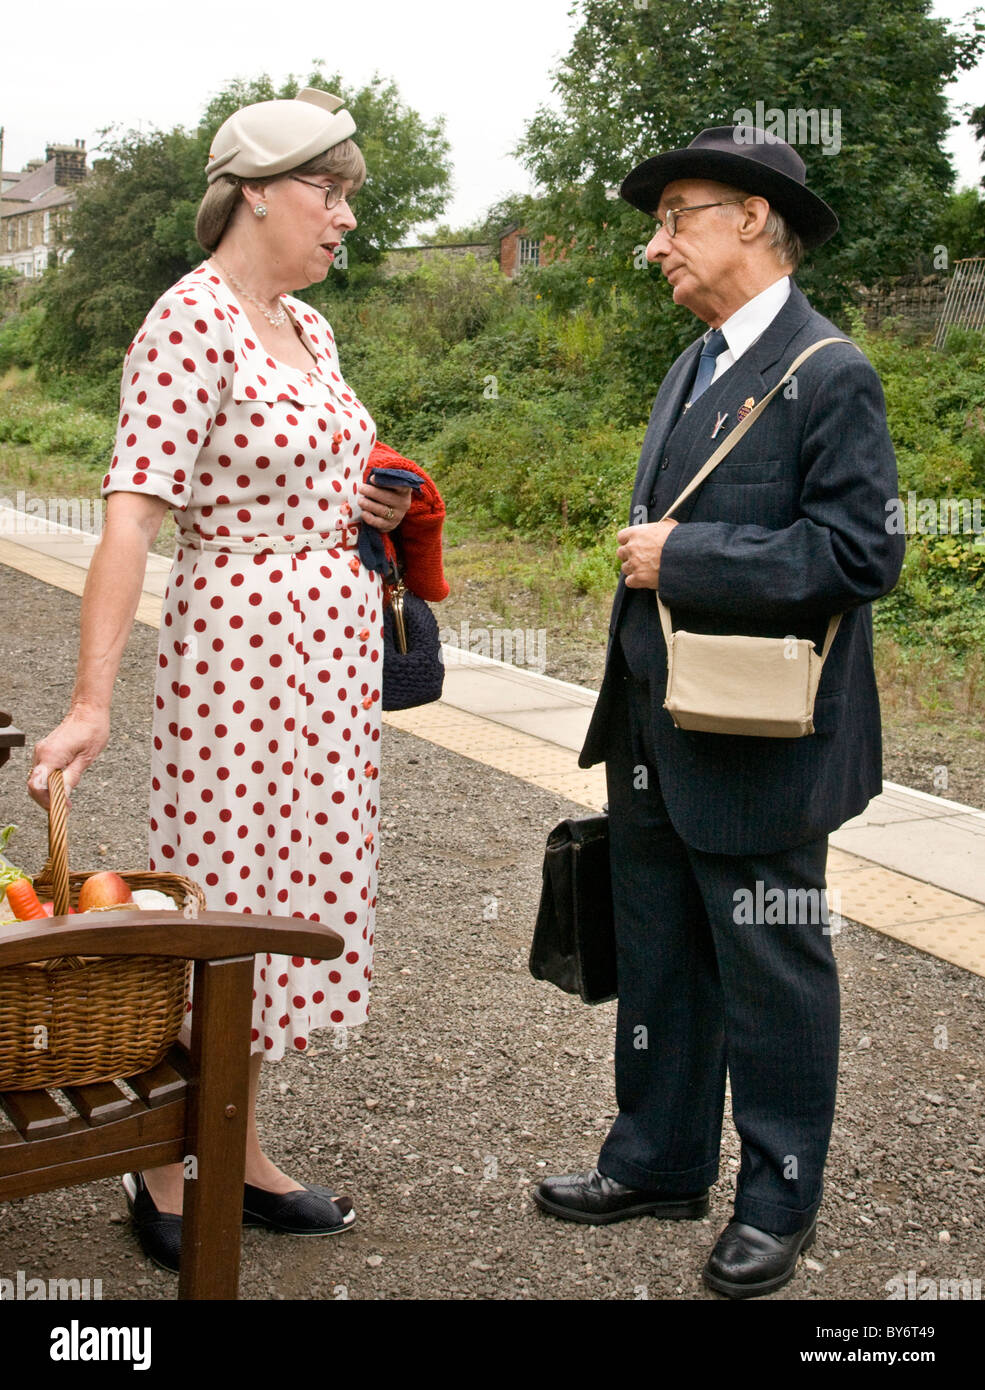 Participants in the 1940's re-enactment weekend at Leyburn, North Yorkshire. Photographed on Leyburn Railway - Stock Image